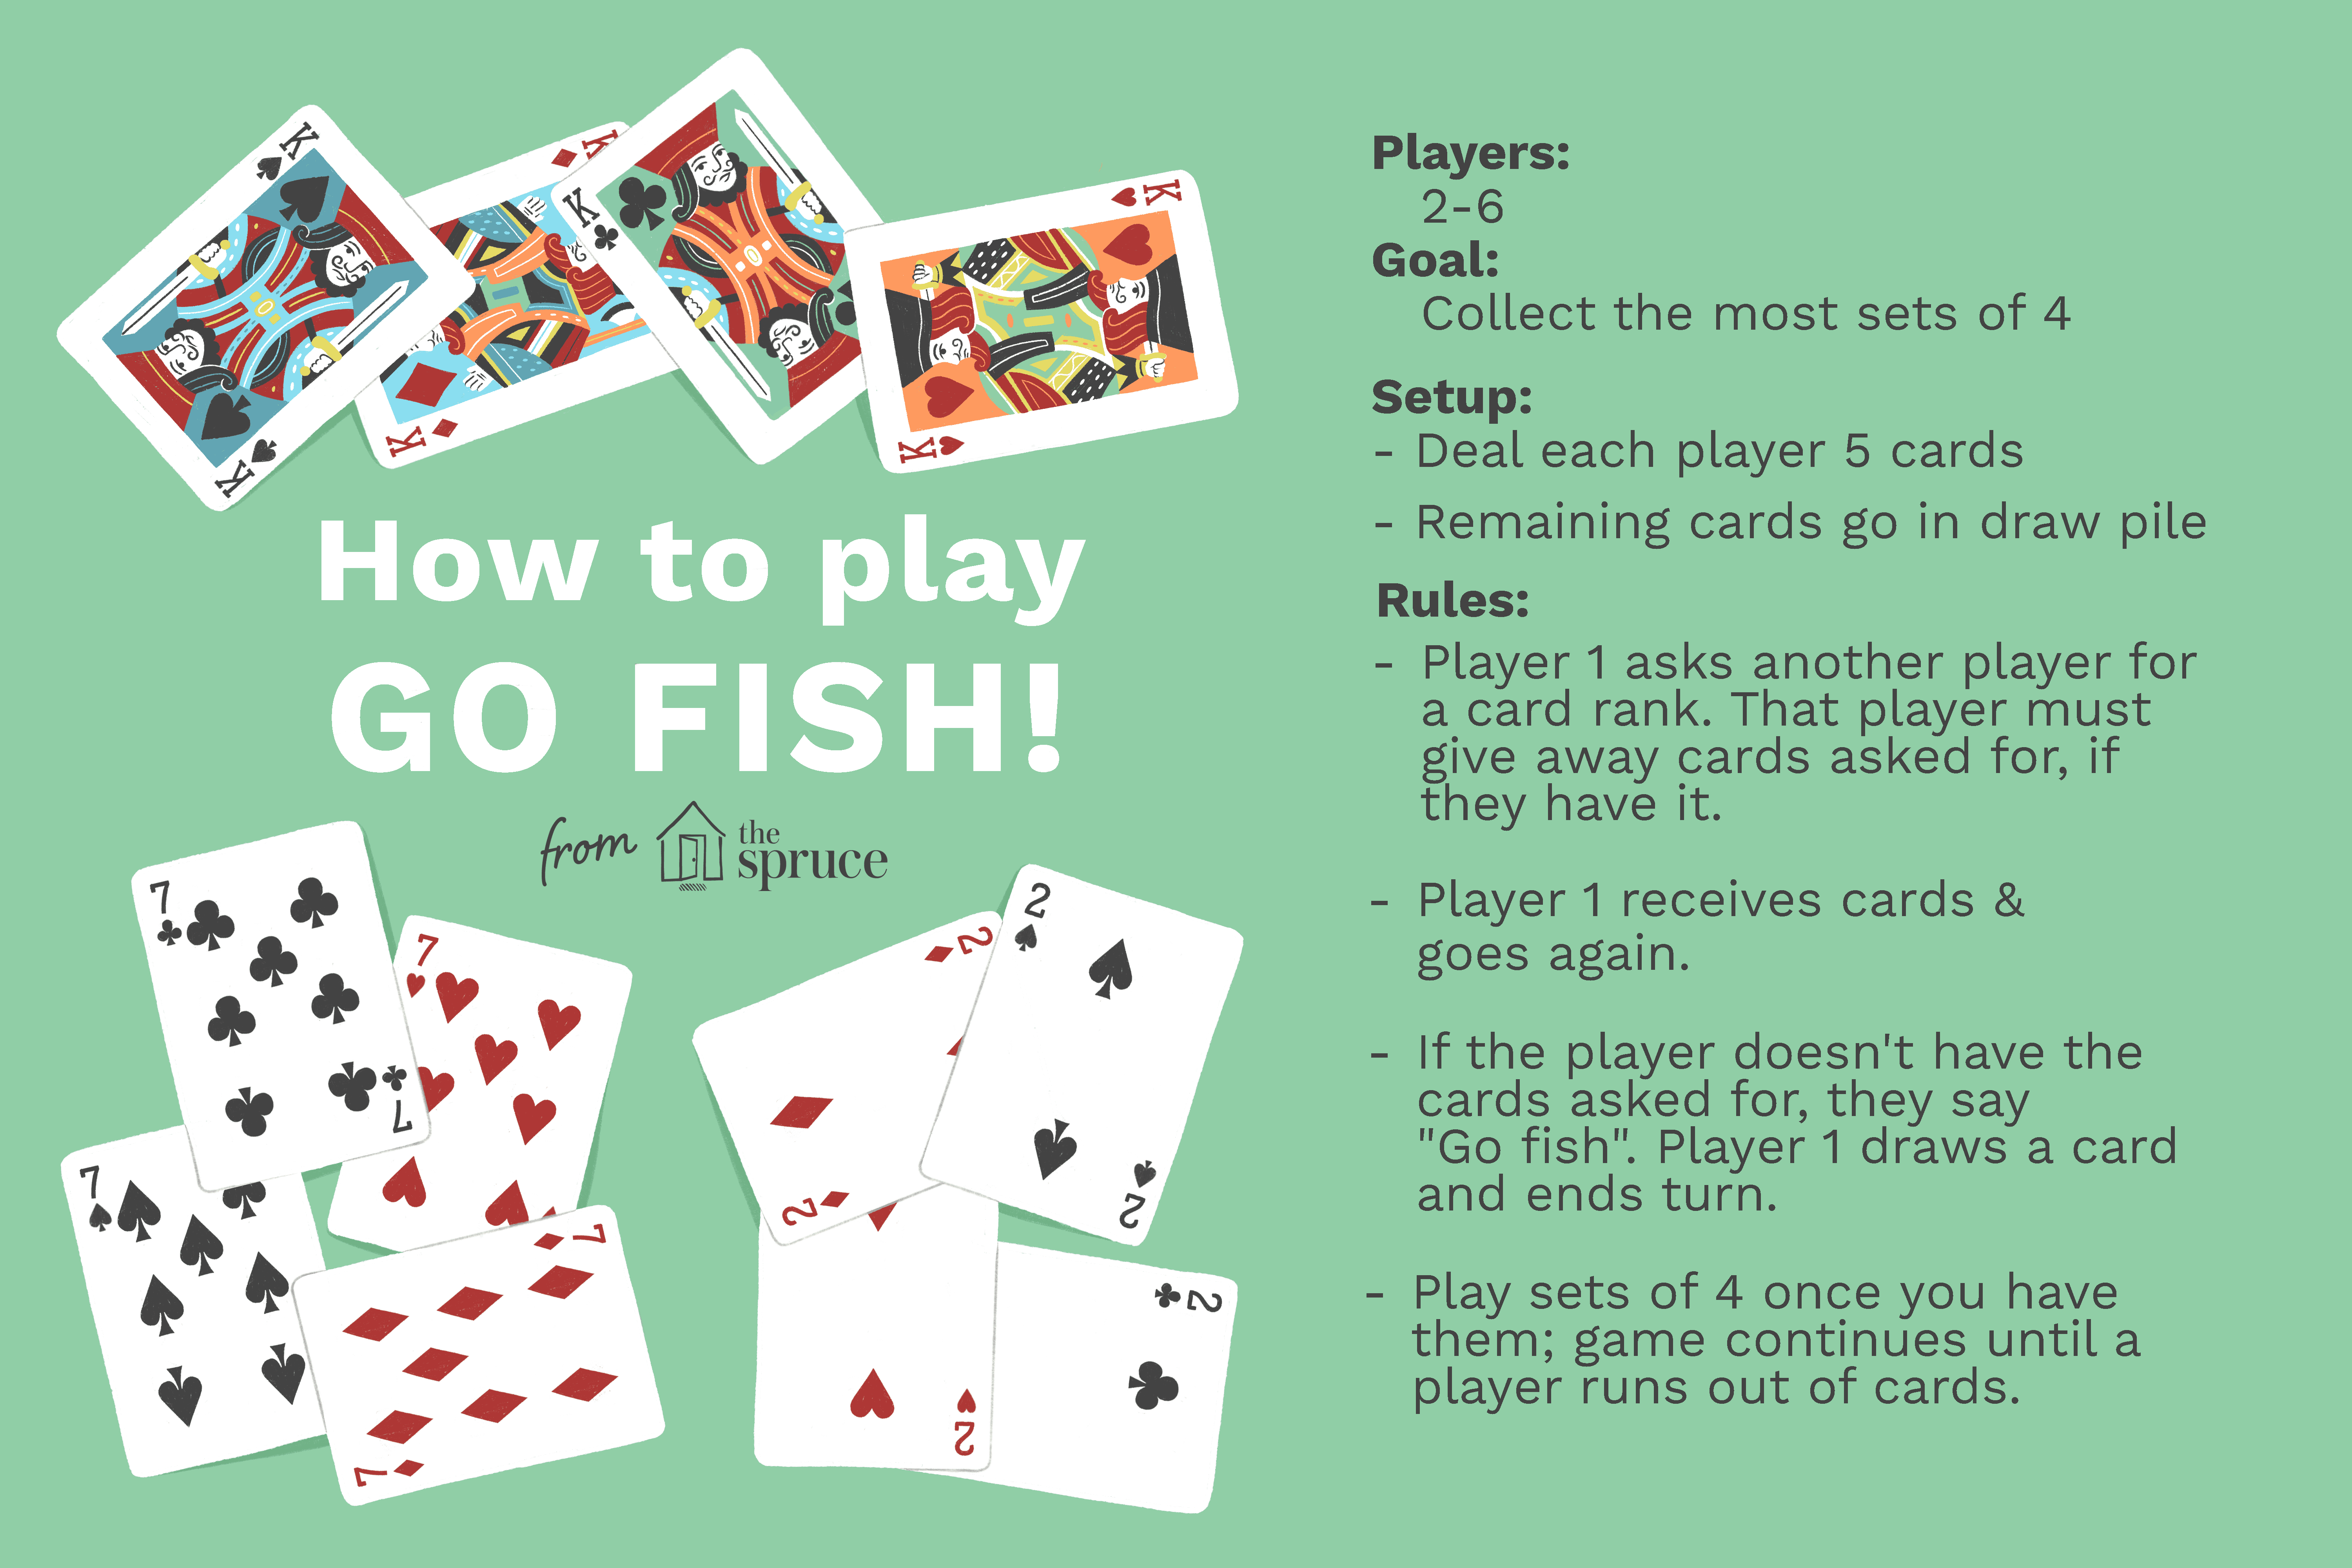 How to Play Go Fish—the complete rules